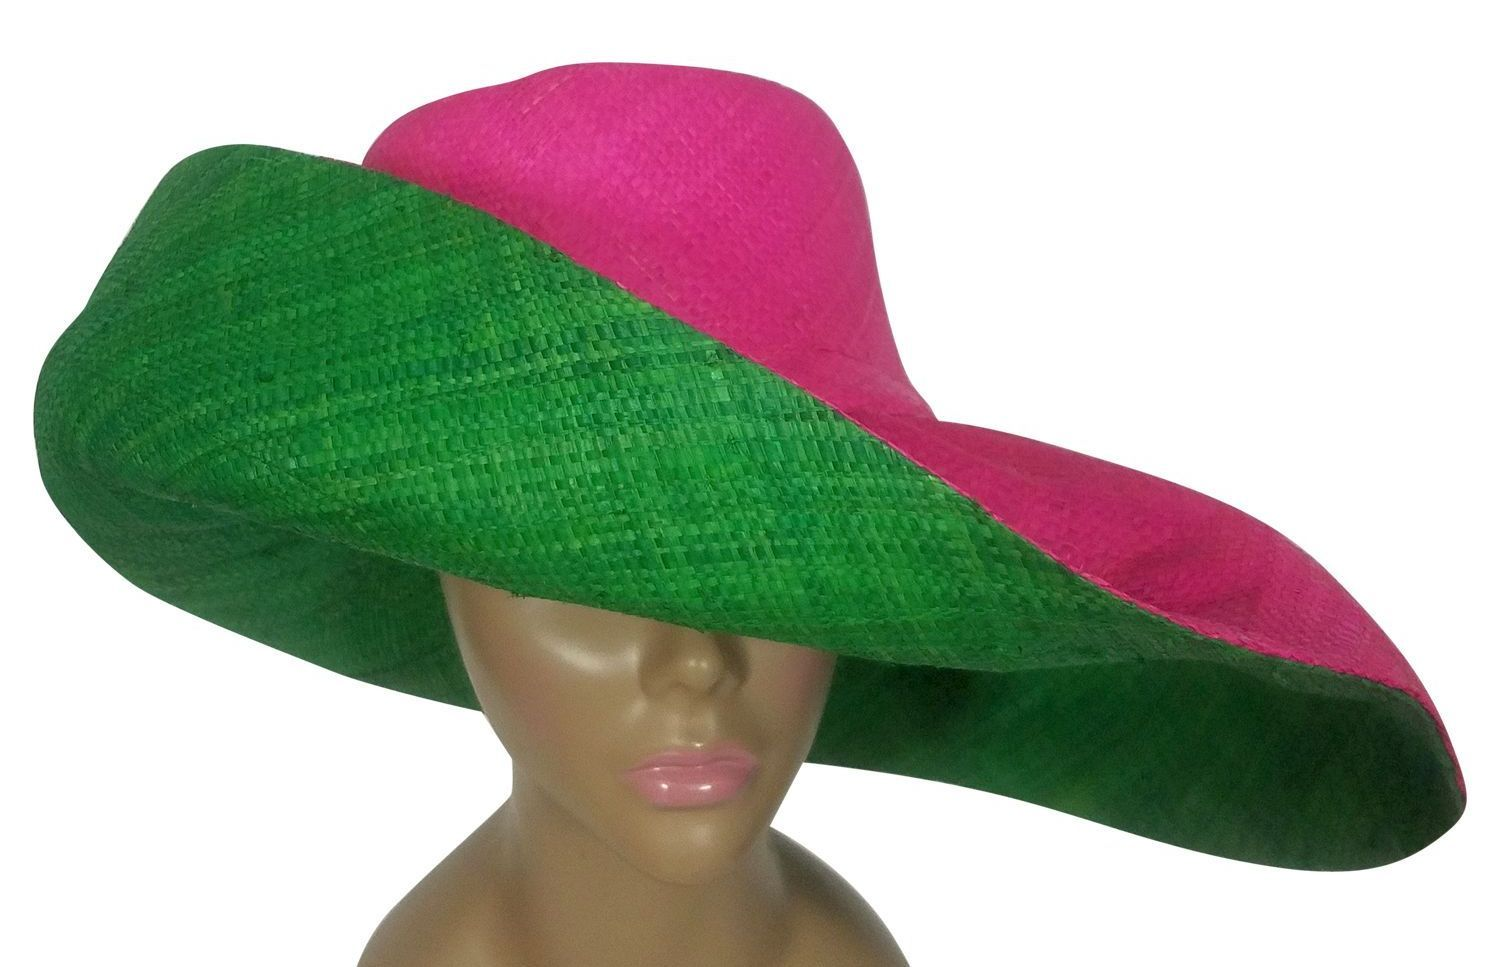 Adjoa: Authentic African Handwoven Pink and Green Madagascar Big Brim Raffia Sun Hat